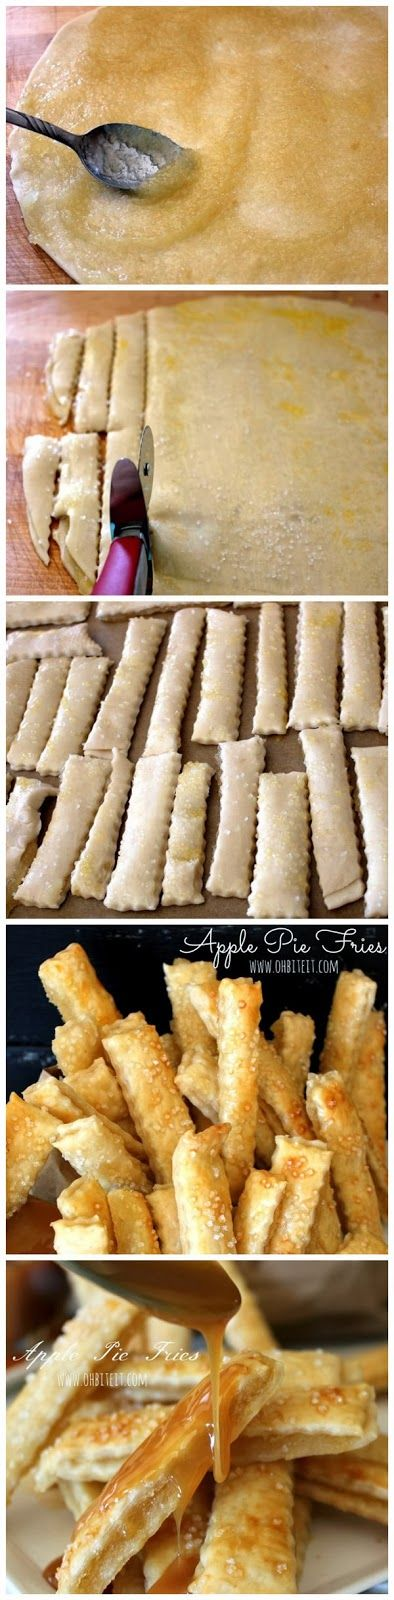 As if apple pie fries wasn't enough to convince you, how about a caramel dipping sauce? Ingredients: 1 Package of Pillsbury Refrigera...